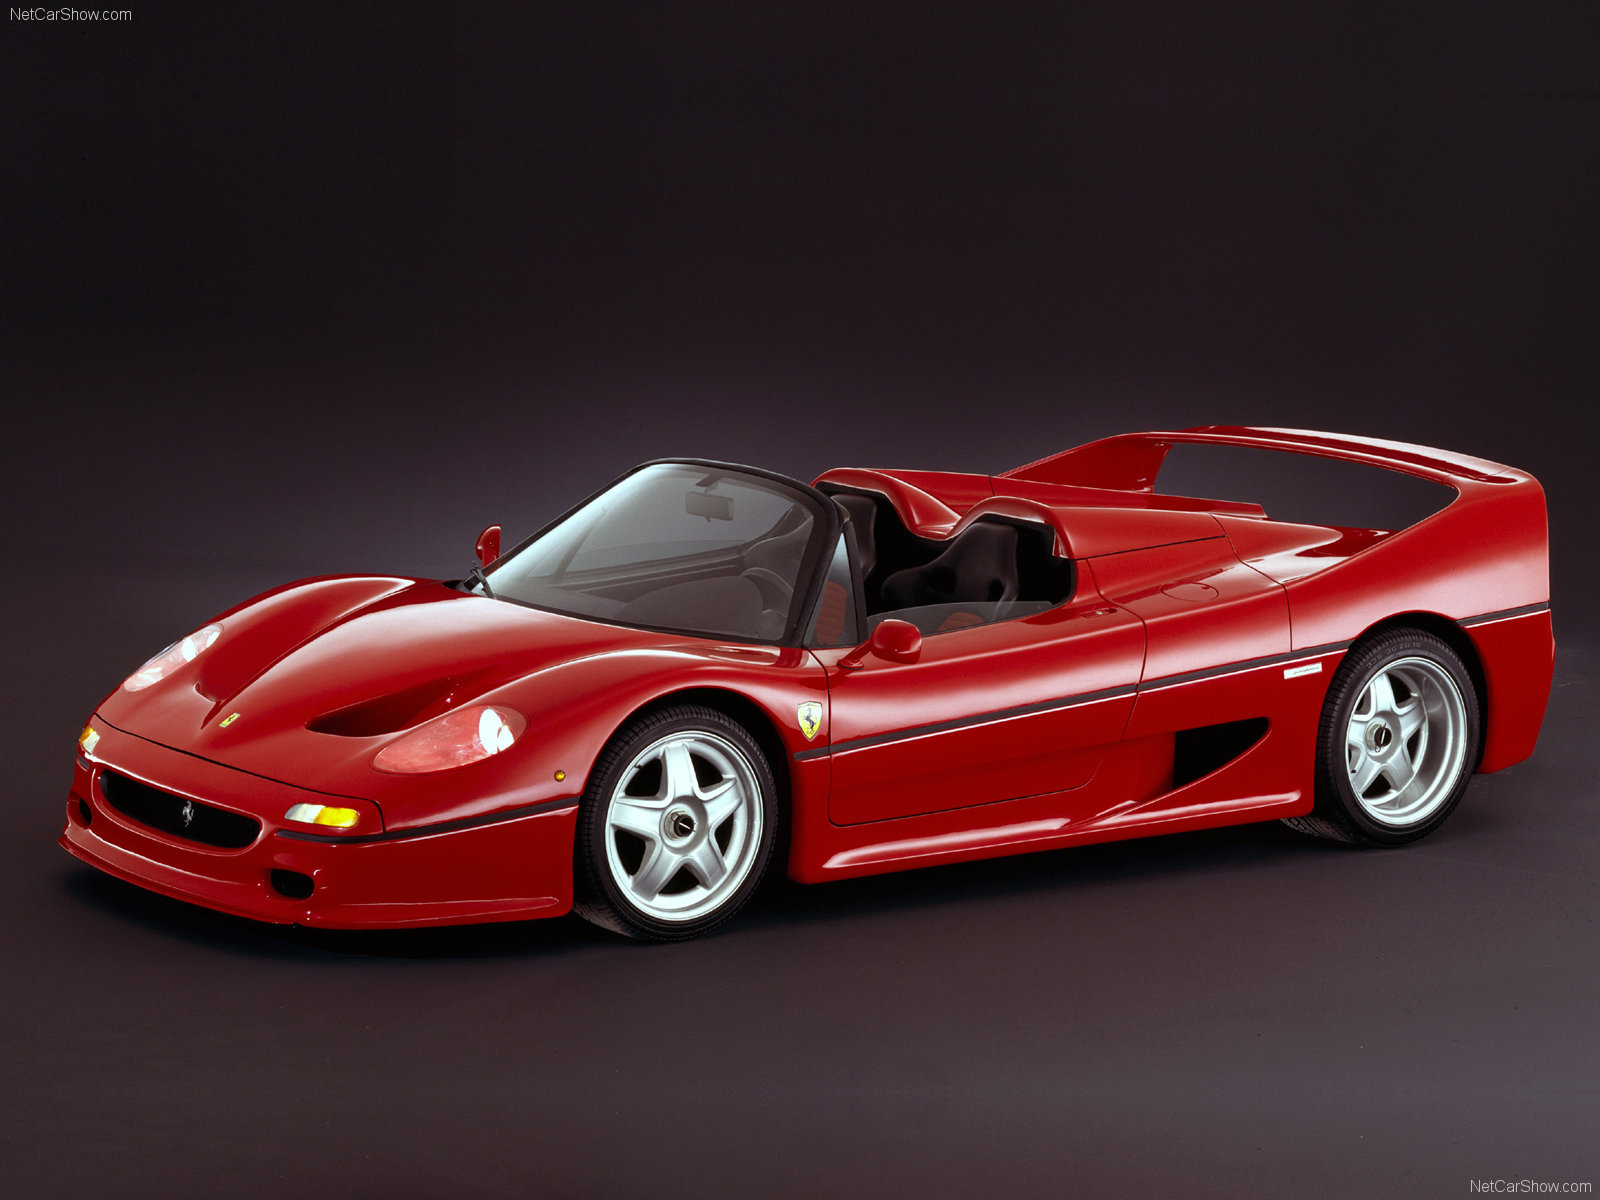 3dtuning of ferrari f50 gt coupe 1996 3dtuning unique on ferrari f50 gt coupe 1996 vanachro Choice Image